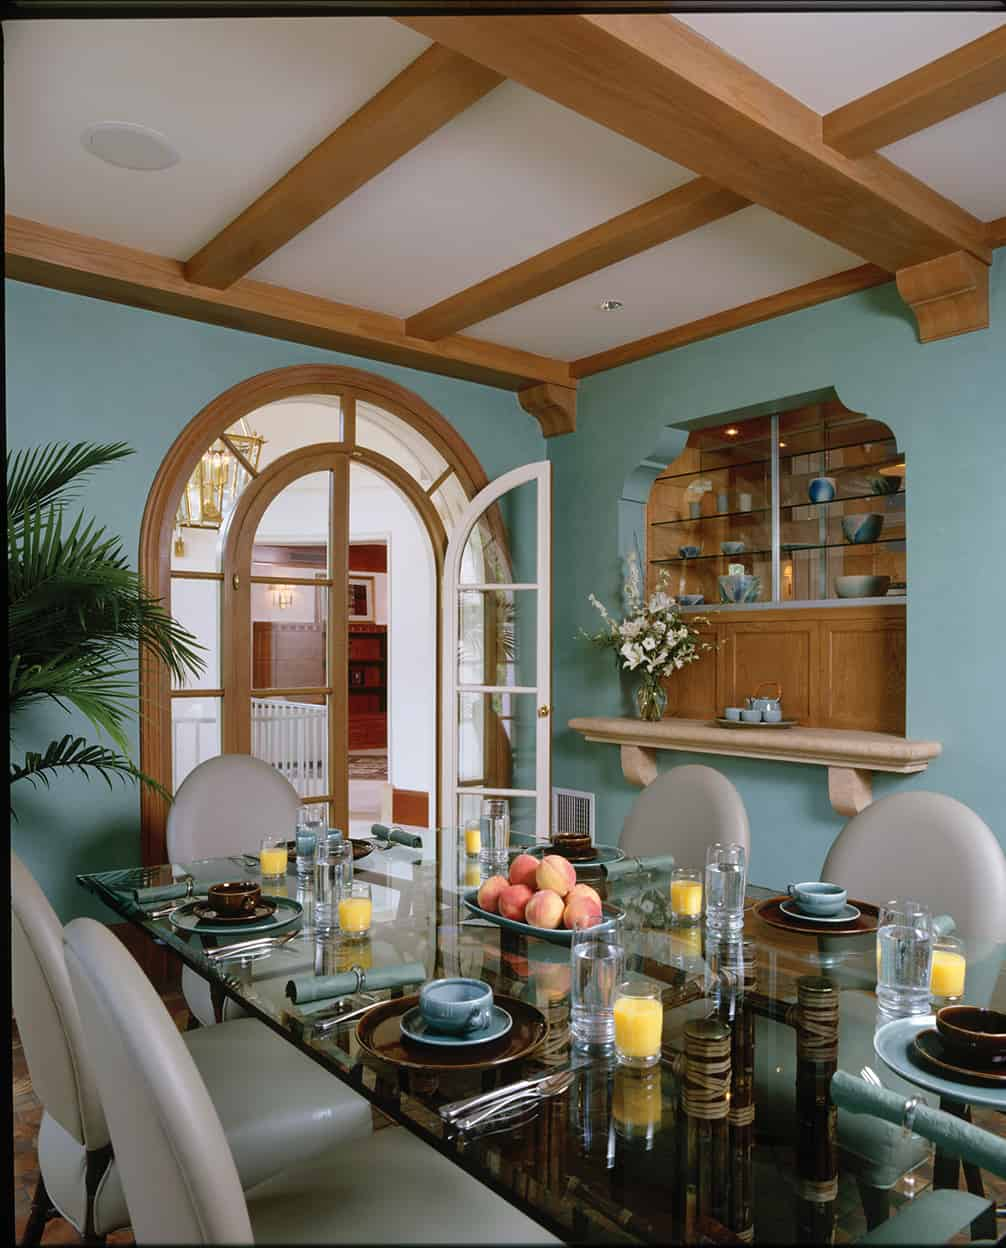 The breakfast room features seafoam walls, an arched French door, a cross-beamed ceiling, a smoked glass-topped table, and white leather chairs. The unusual built-in china cabinet starts at waist height and its closed cabinetry and open glass shelves fit into a nook carved in the wall above a stone shelf.